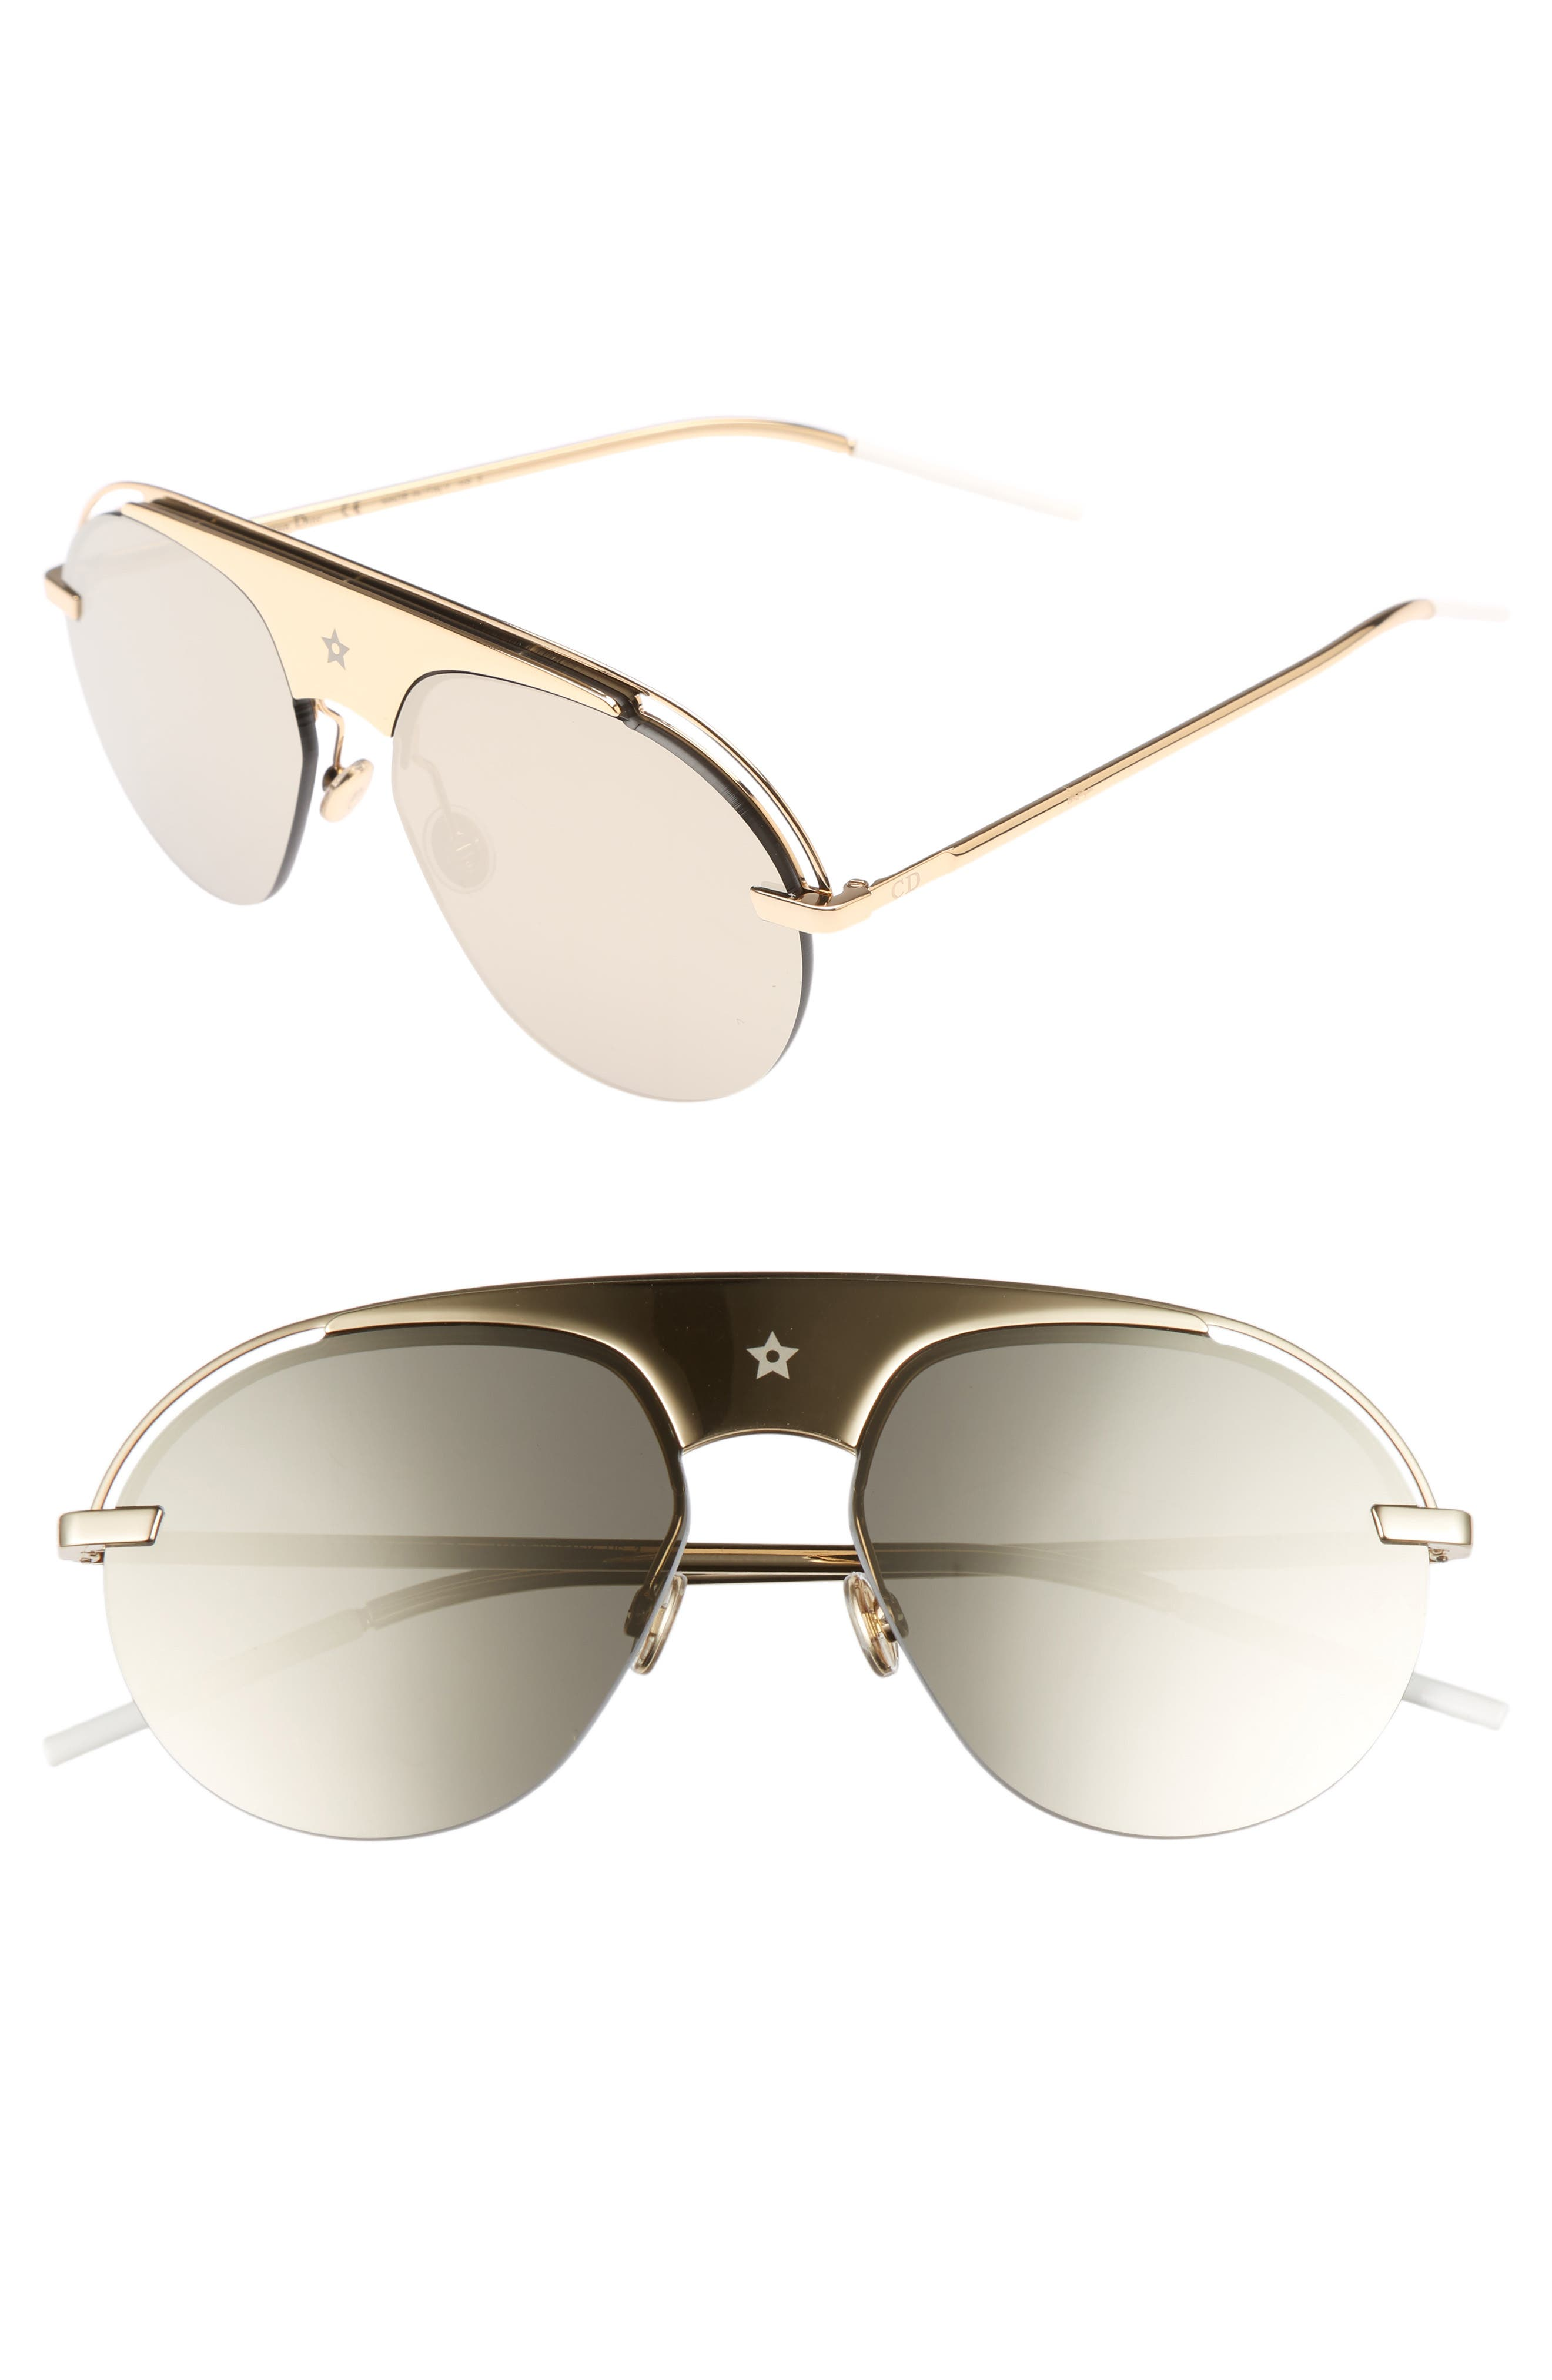 Alternate Image 1 Selected - Dior Evolution 2 60mm Aviator Sunglasses